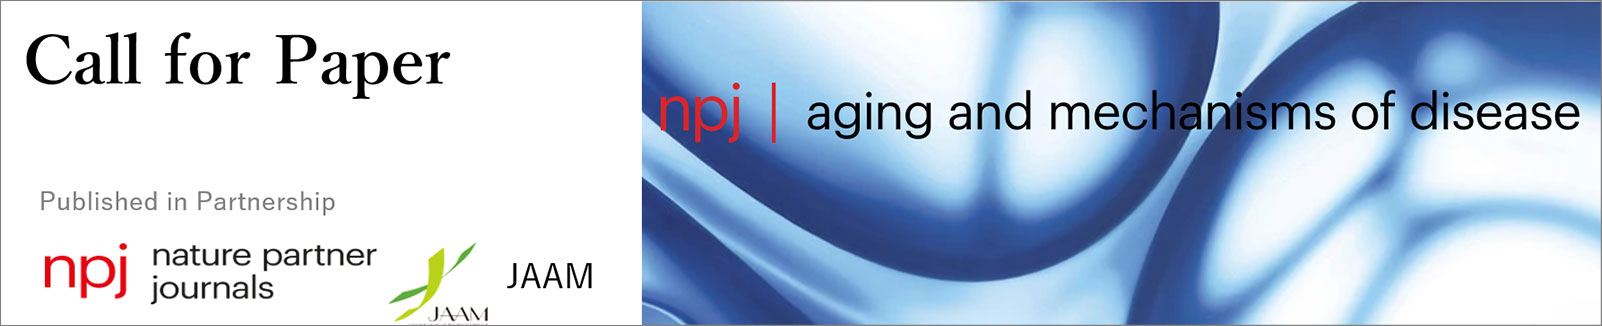 npj Call for Papers